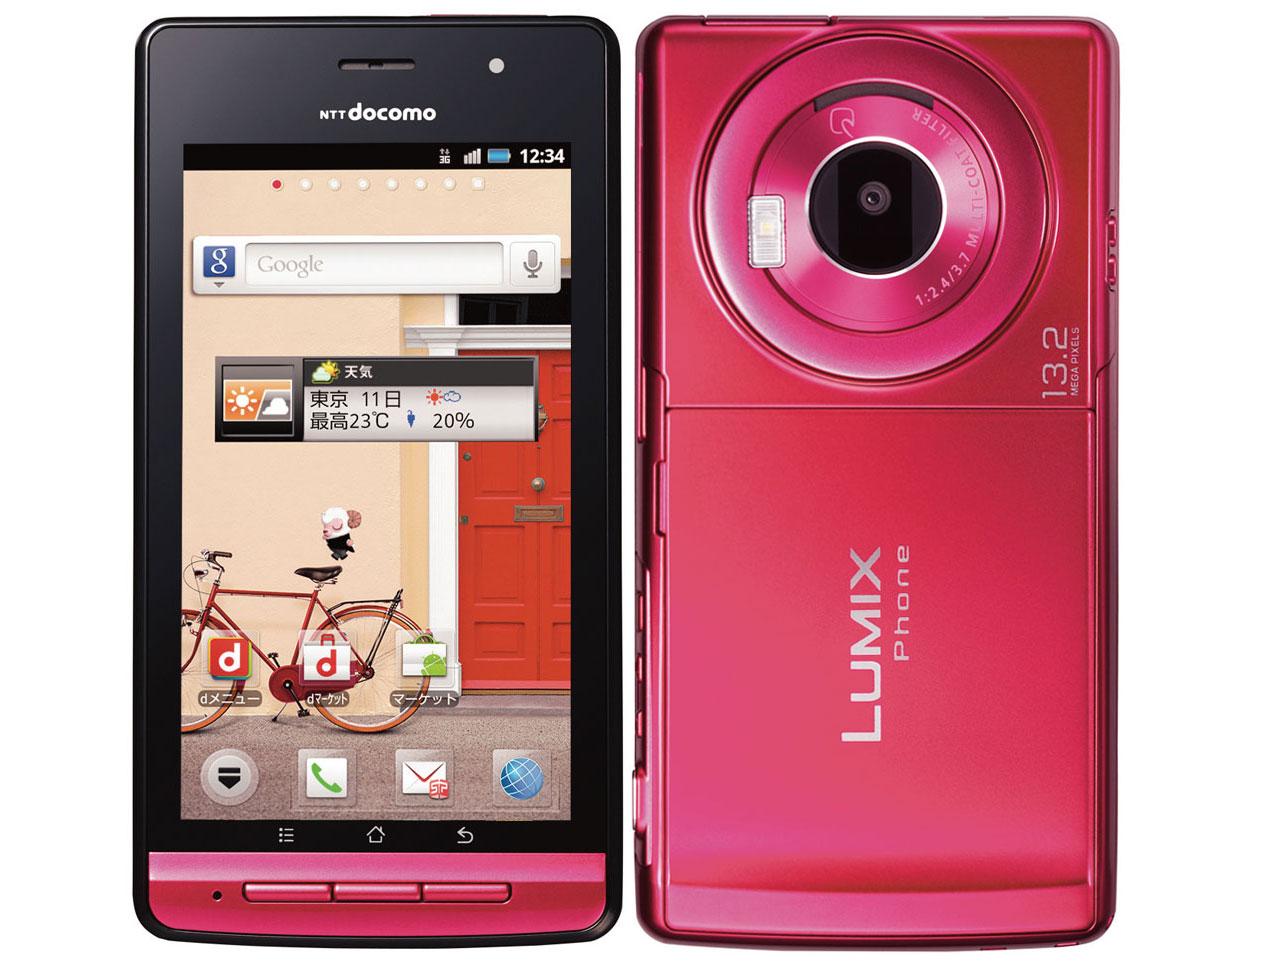 Panasonic LUMIX Phone P-02D